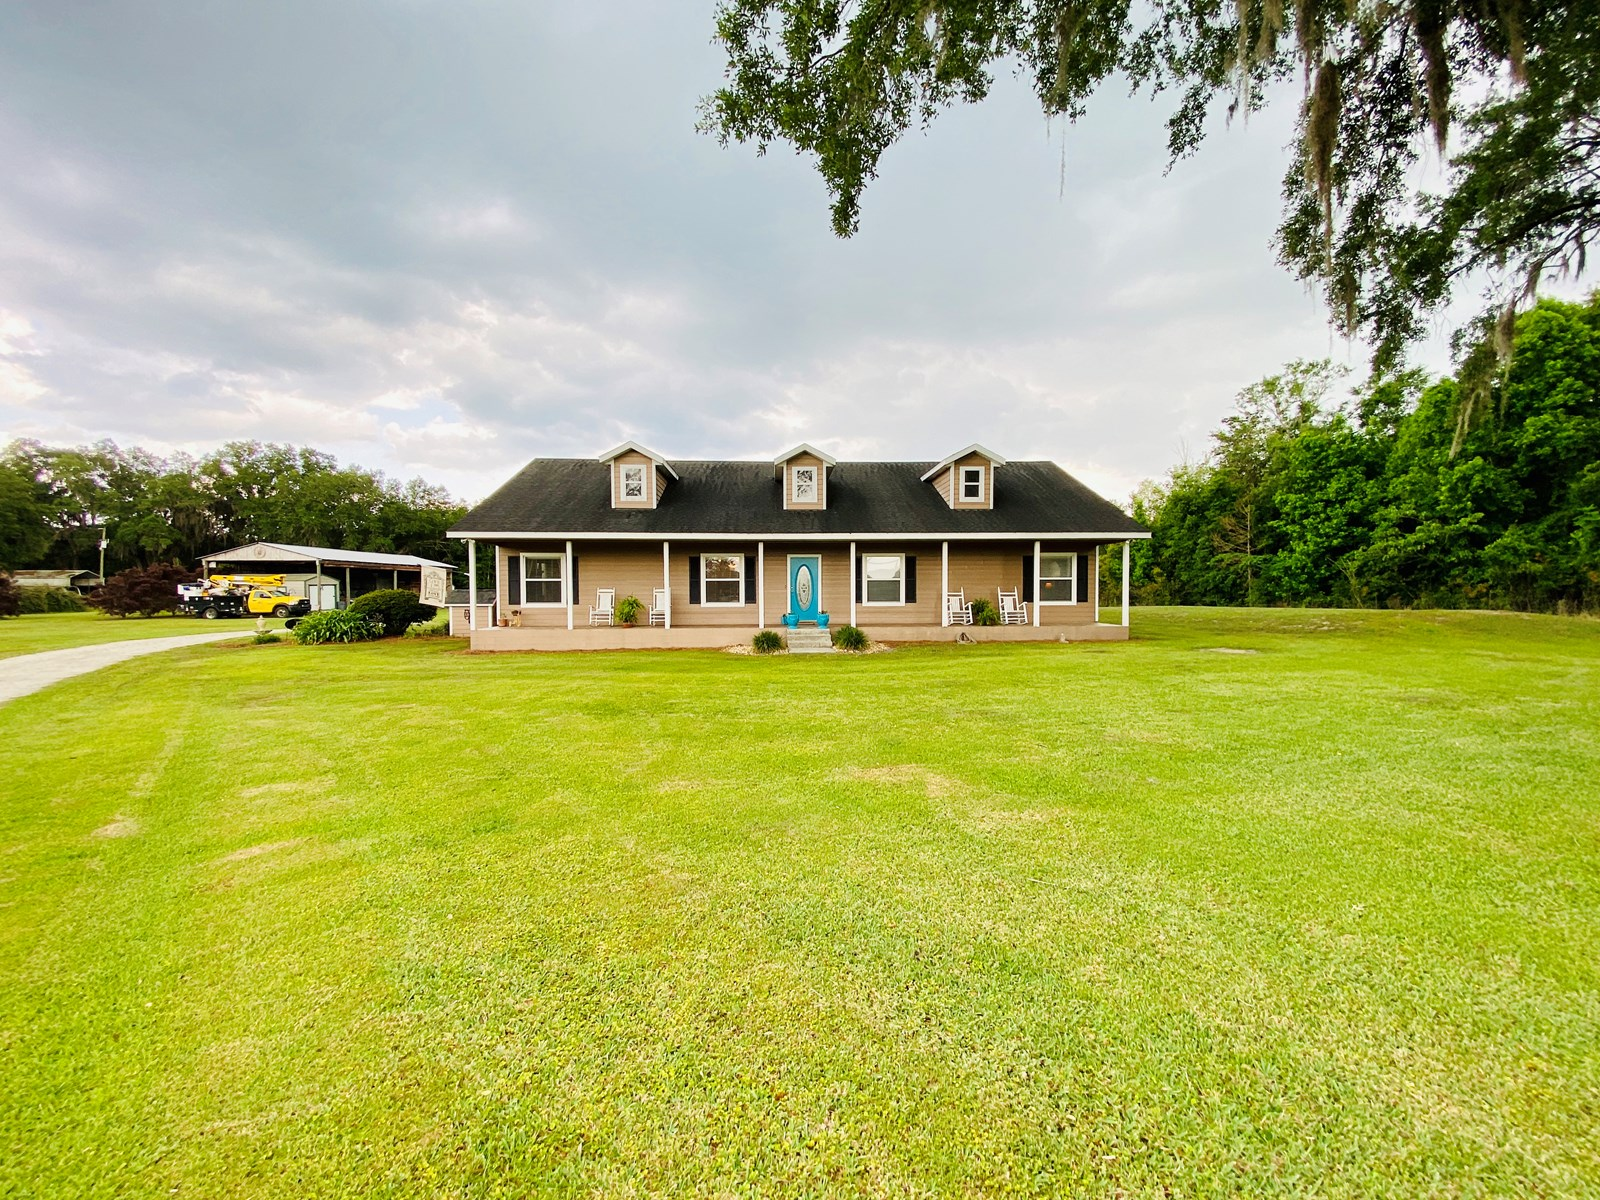 4 bedrooms 2.5 bathrooms on 5 secluded acres